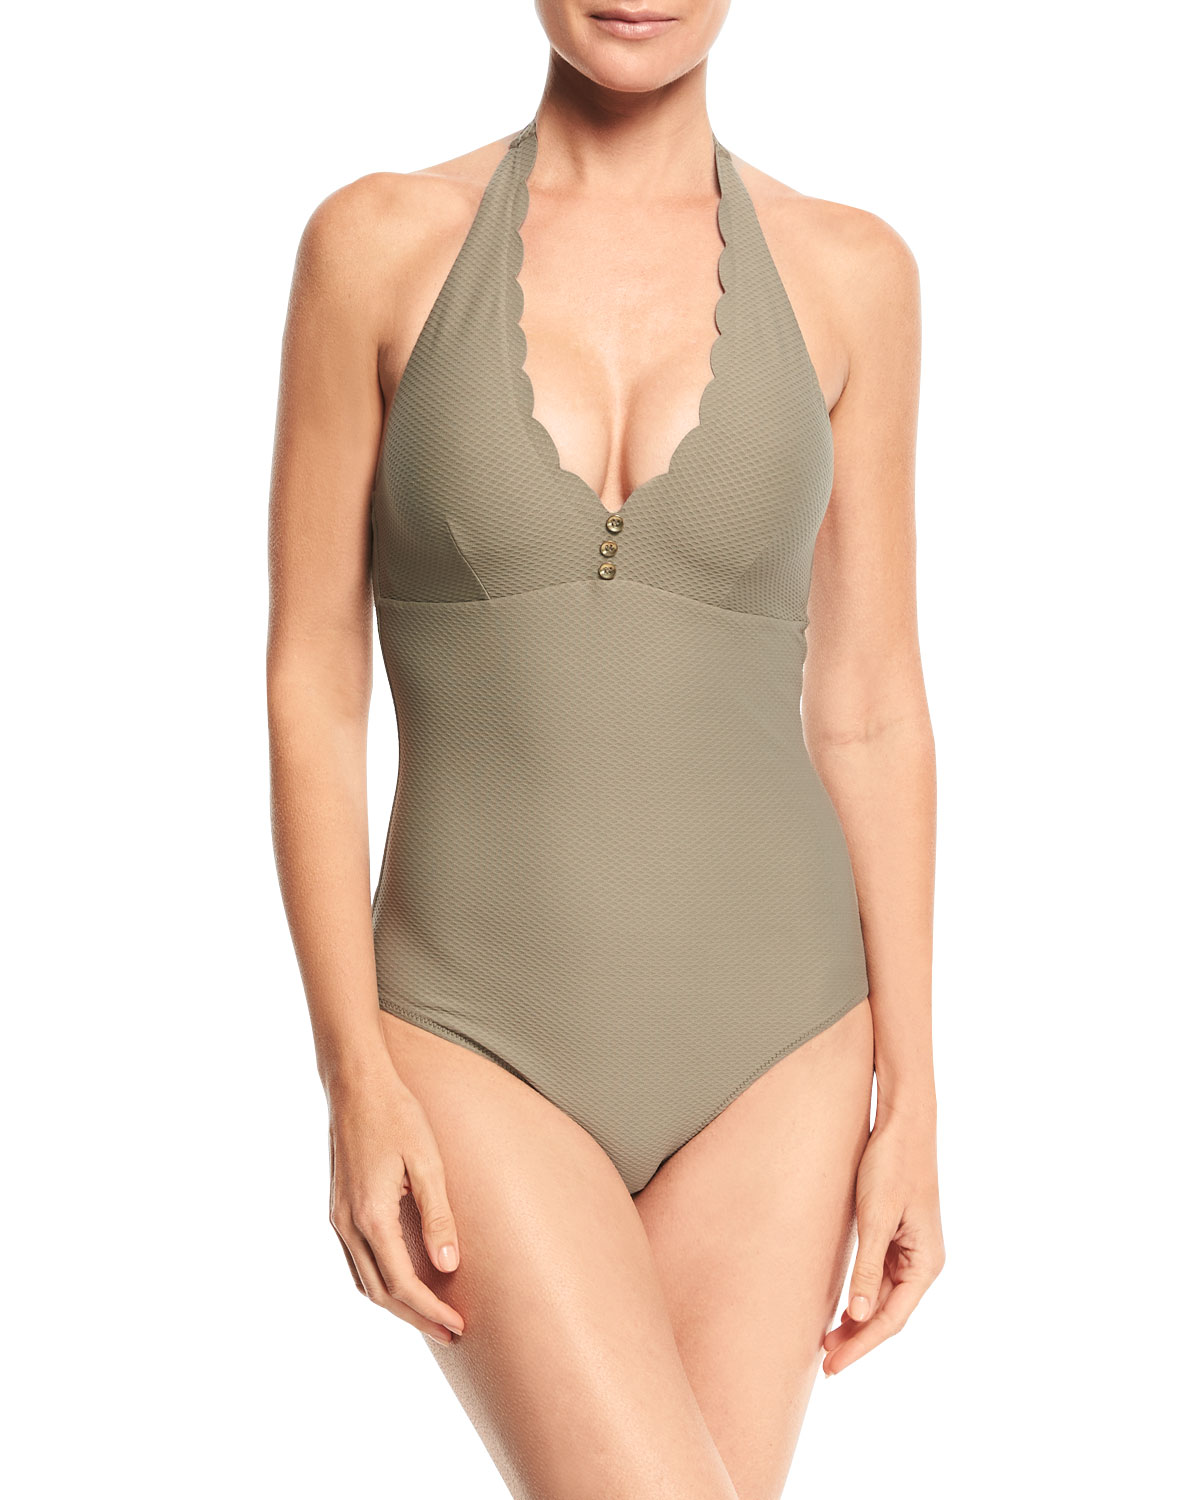 Lumu Scalloped Halter One-Piece Swimsuit